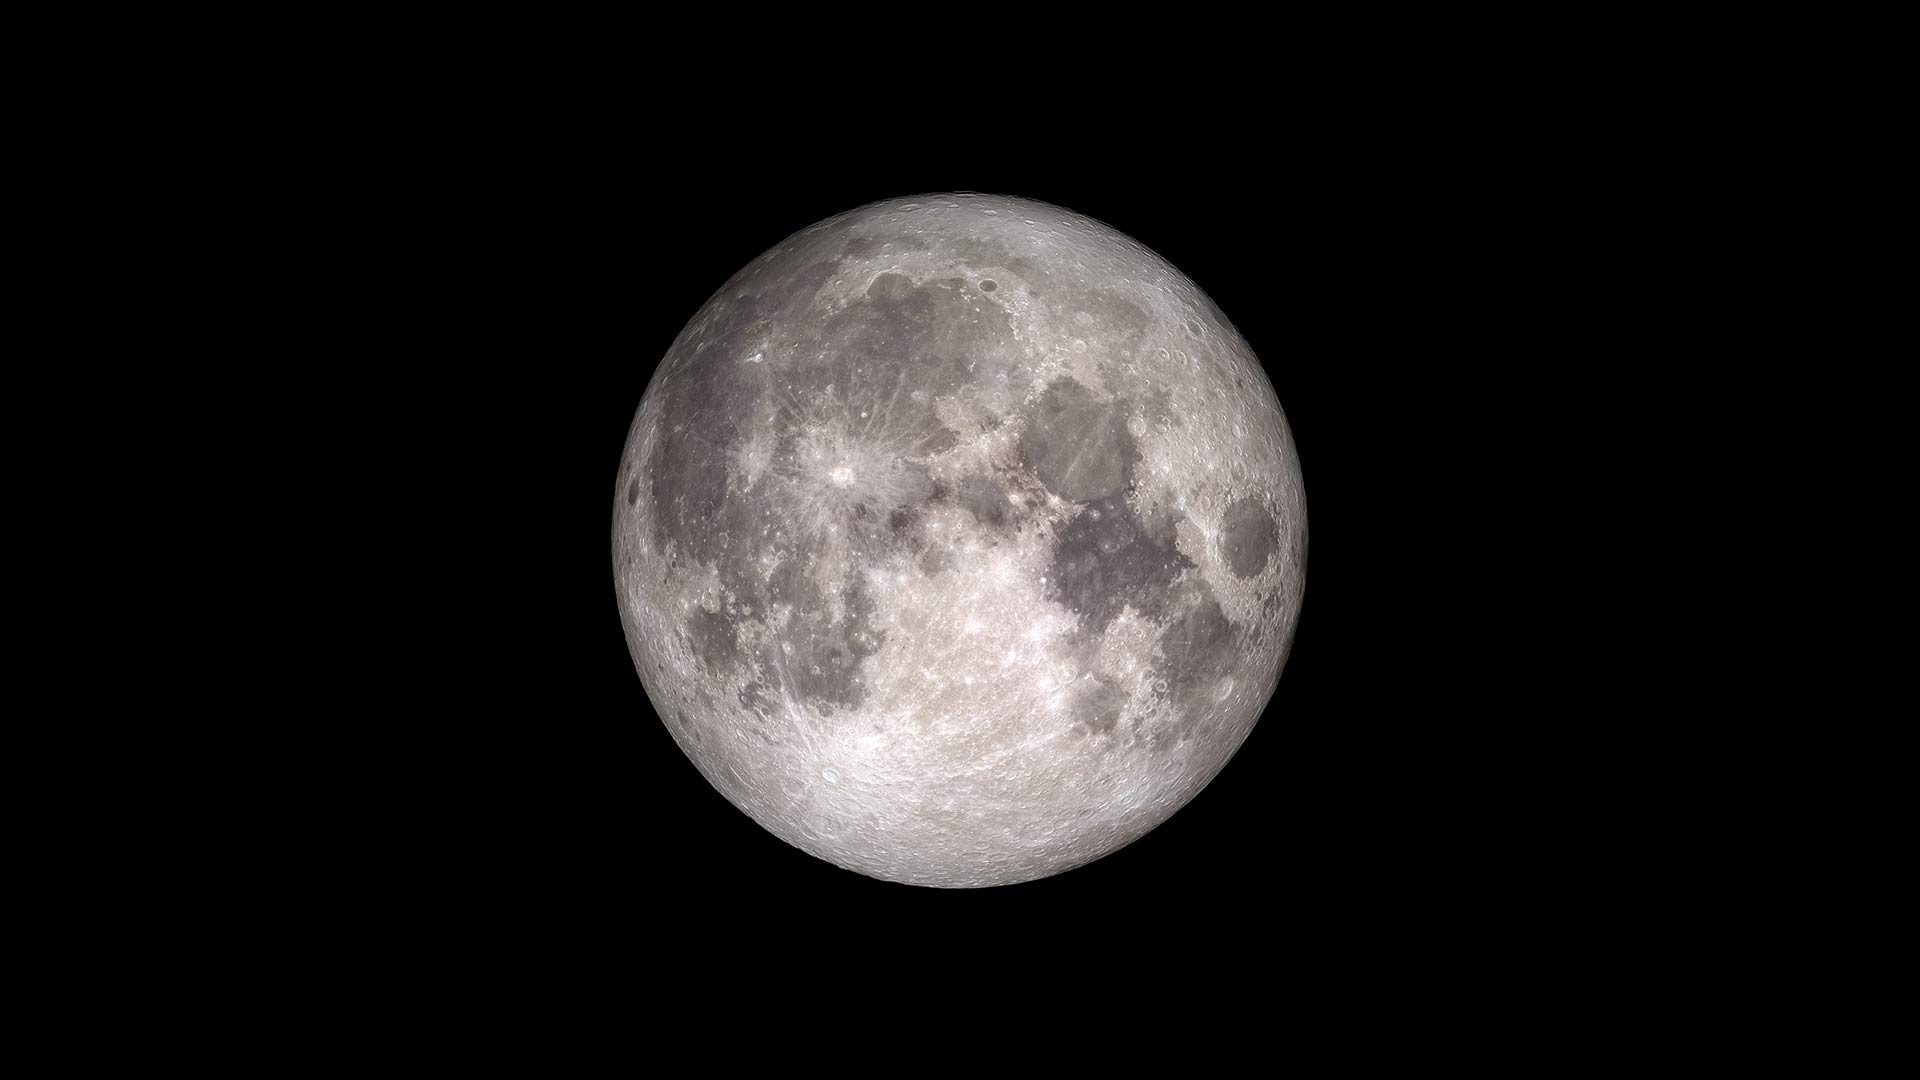 Image of a full moon from NASA.